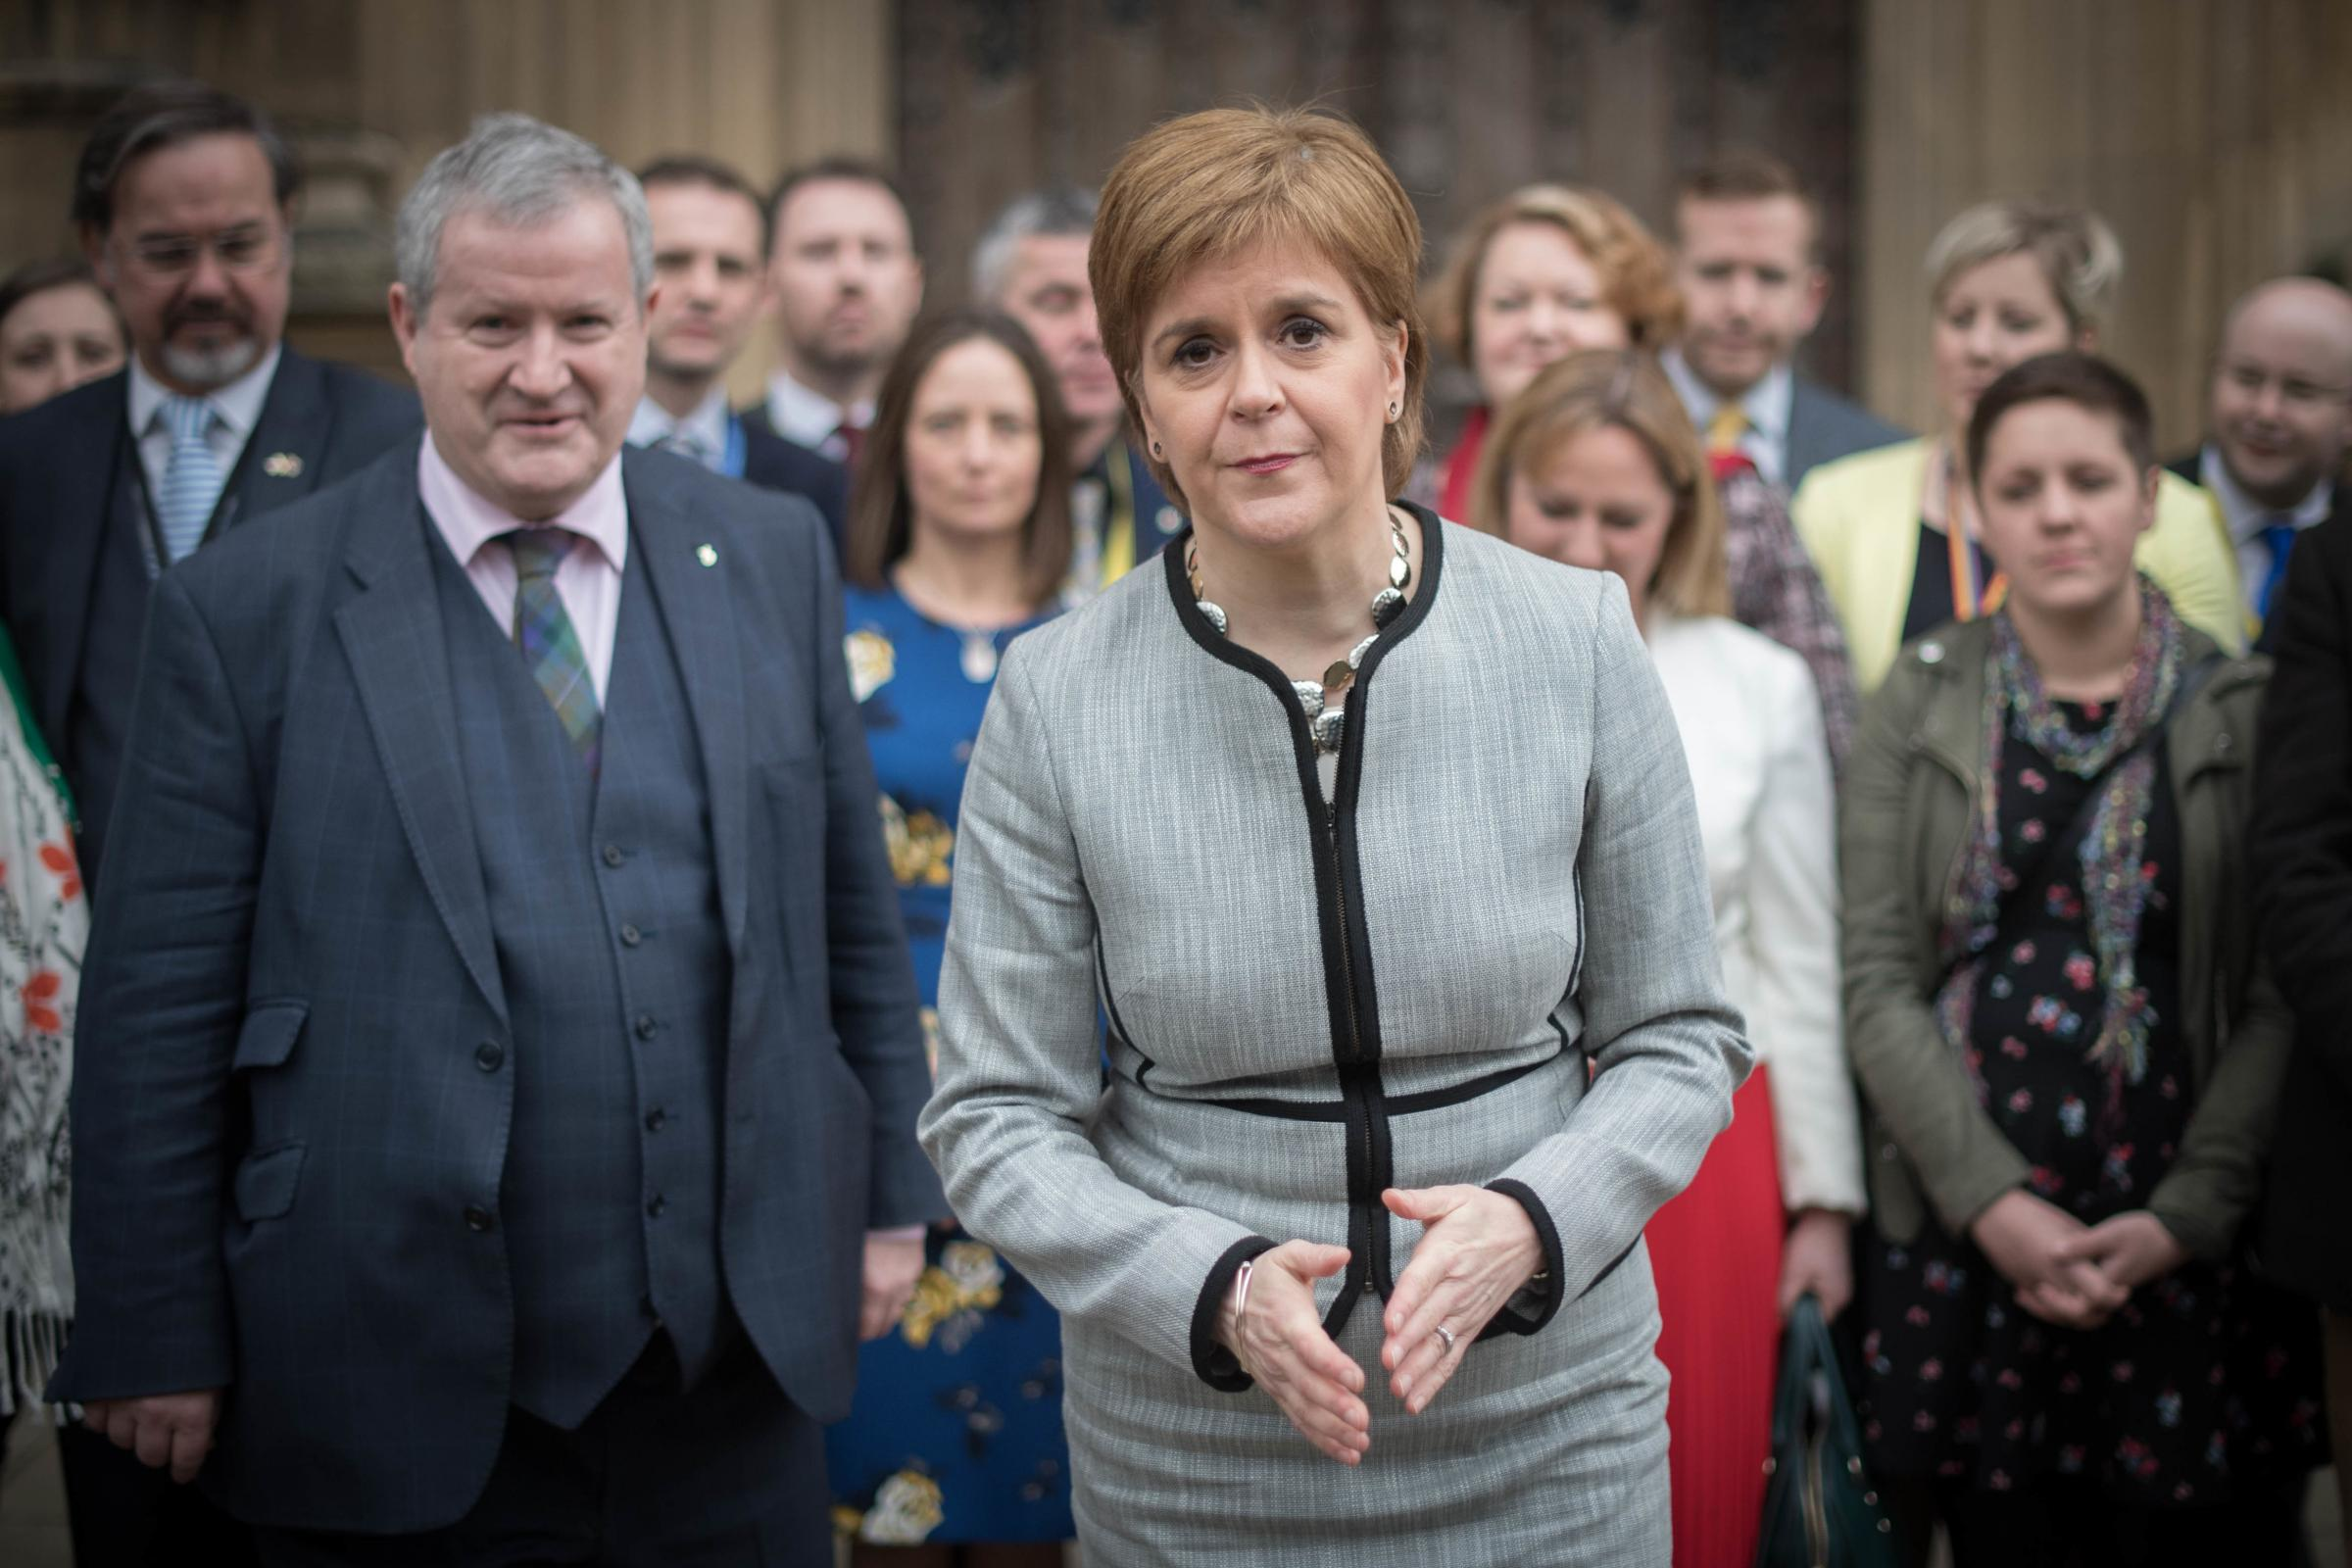 NIcola Sturgeon, pictured with the SNP MPs, said she will set out what Brexit means for Scotland in the longer term